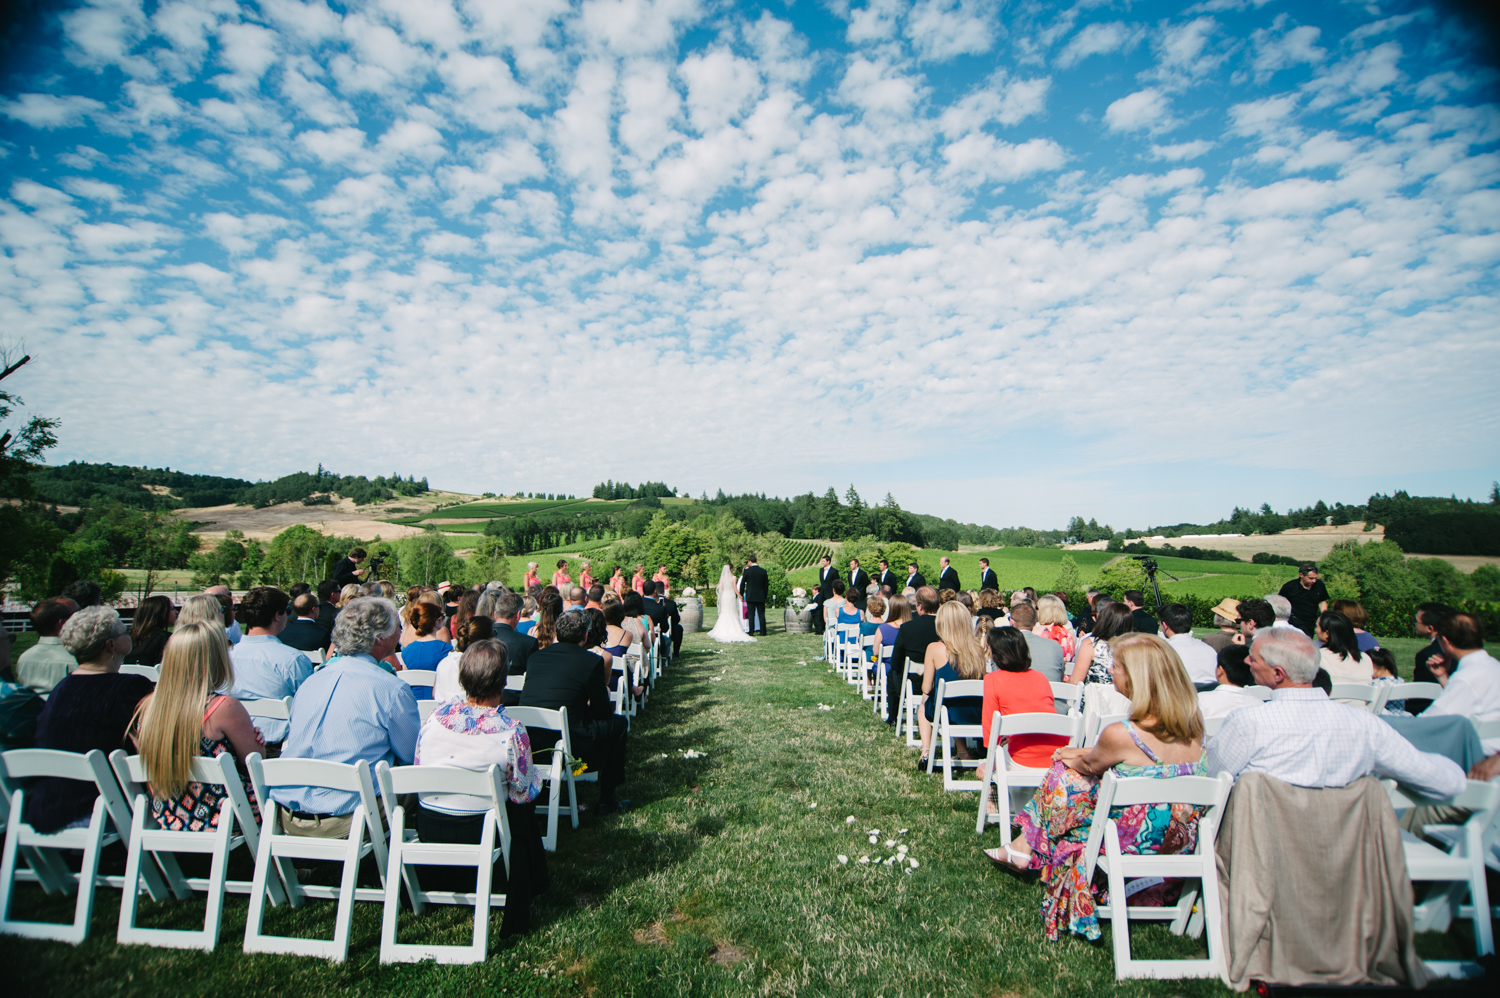 11-zenith-vineyard-wedding-portland-oregon-christa-taylor-photography.jpg